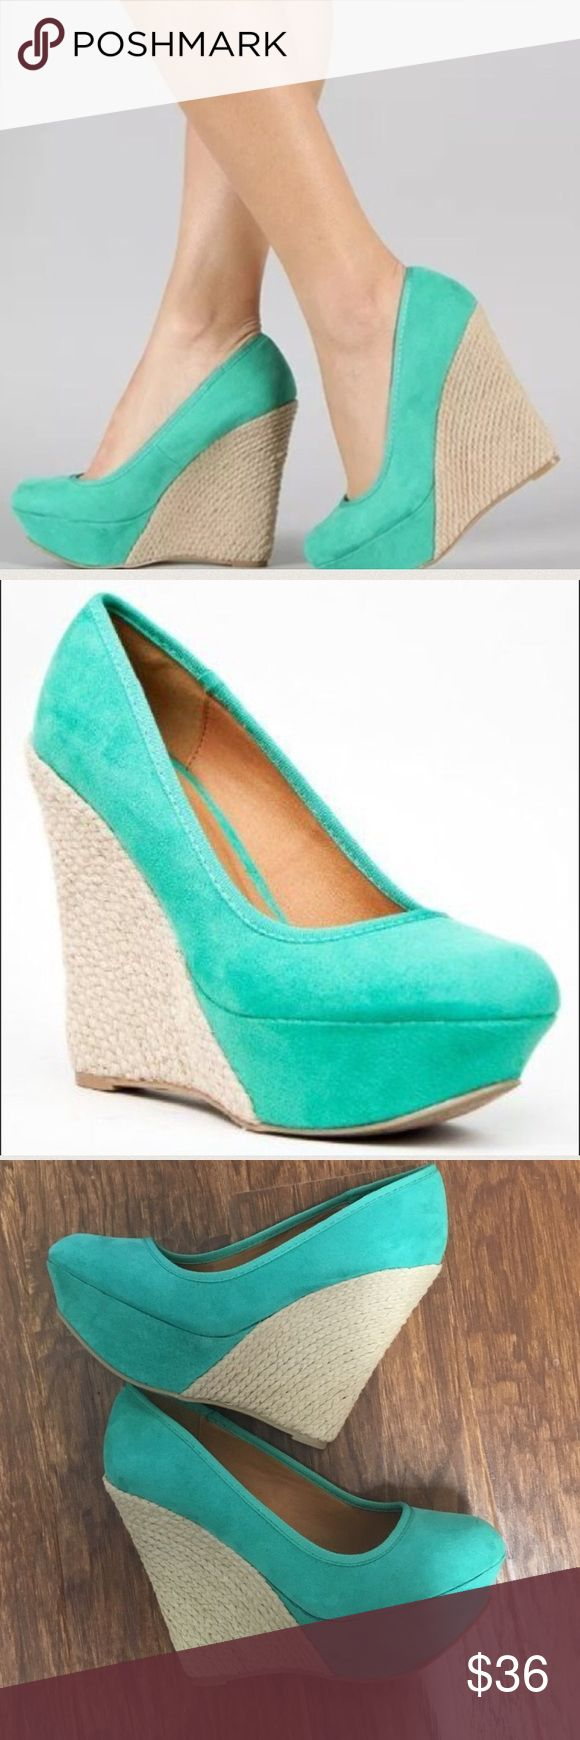 "Qupid mint green espadrilles wedges size 5.5 Keep it casual in these sweet wedges. Features smooth faux suede upper, round toe front, stitching accents, braided espadrille platform and wedge heel. Slide style and finished with padded insole. ~Material: Faux Suede (man-made) ~Sole: Synthetic  heel height: 5"" w/ 1.5"" platform (approx) fitting tips: foot model is a true size 6, foot measures 8.9"" from heel to toe, width measures 2.5"". model's review: true to size. Original box may not be…"